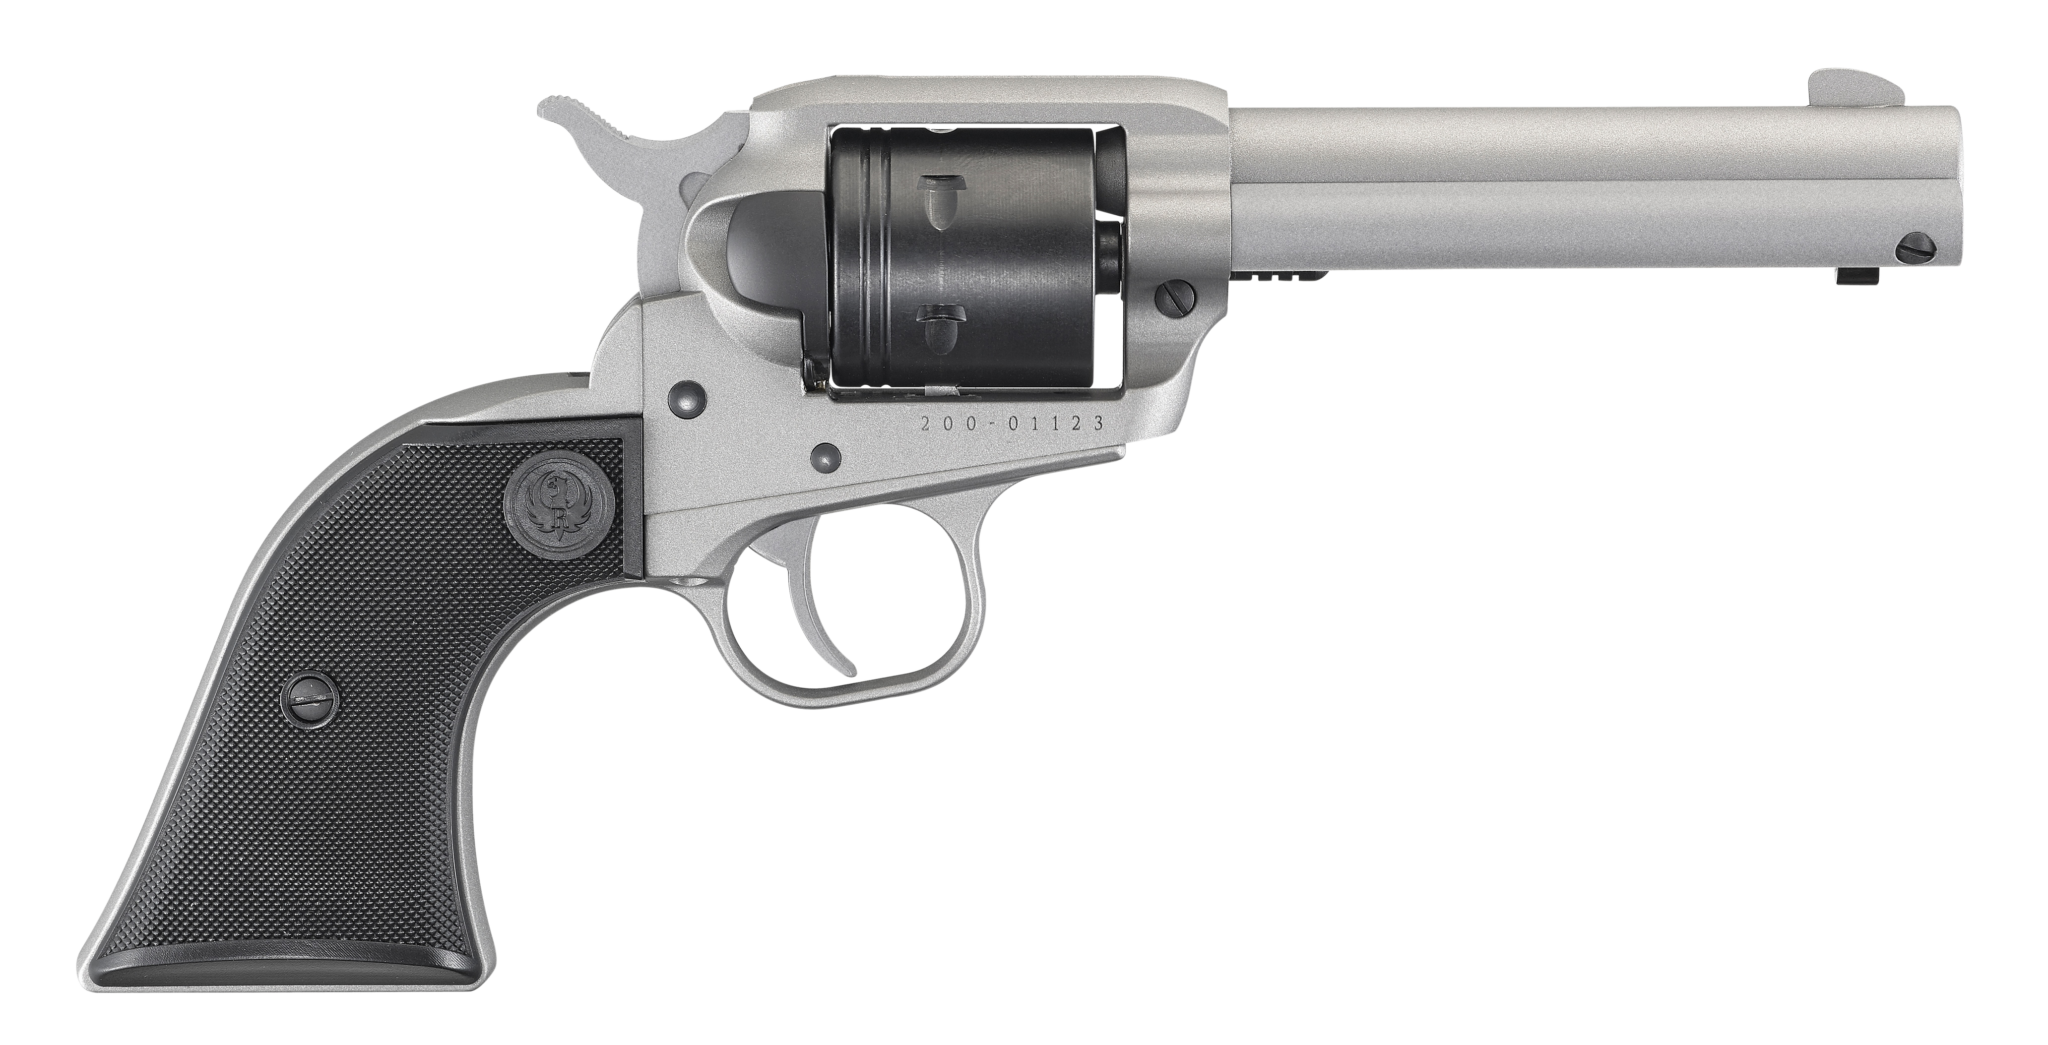 ruger lcr 22 price